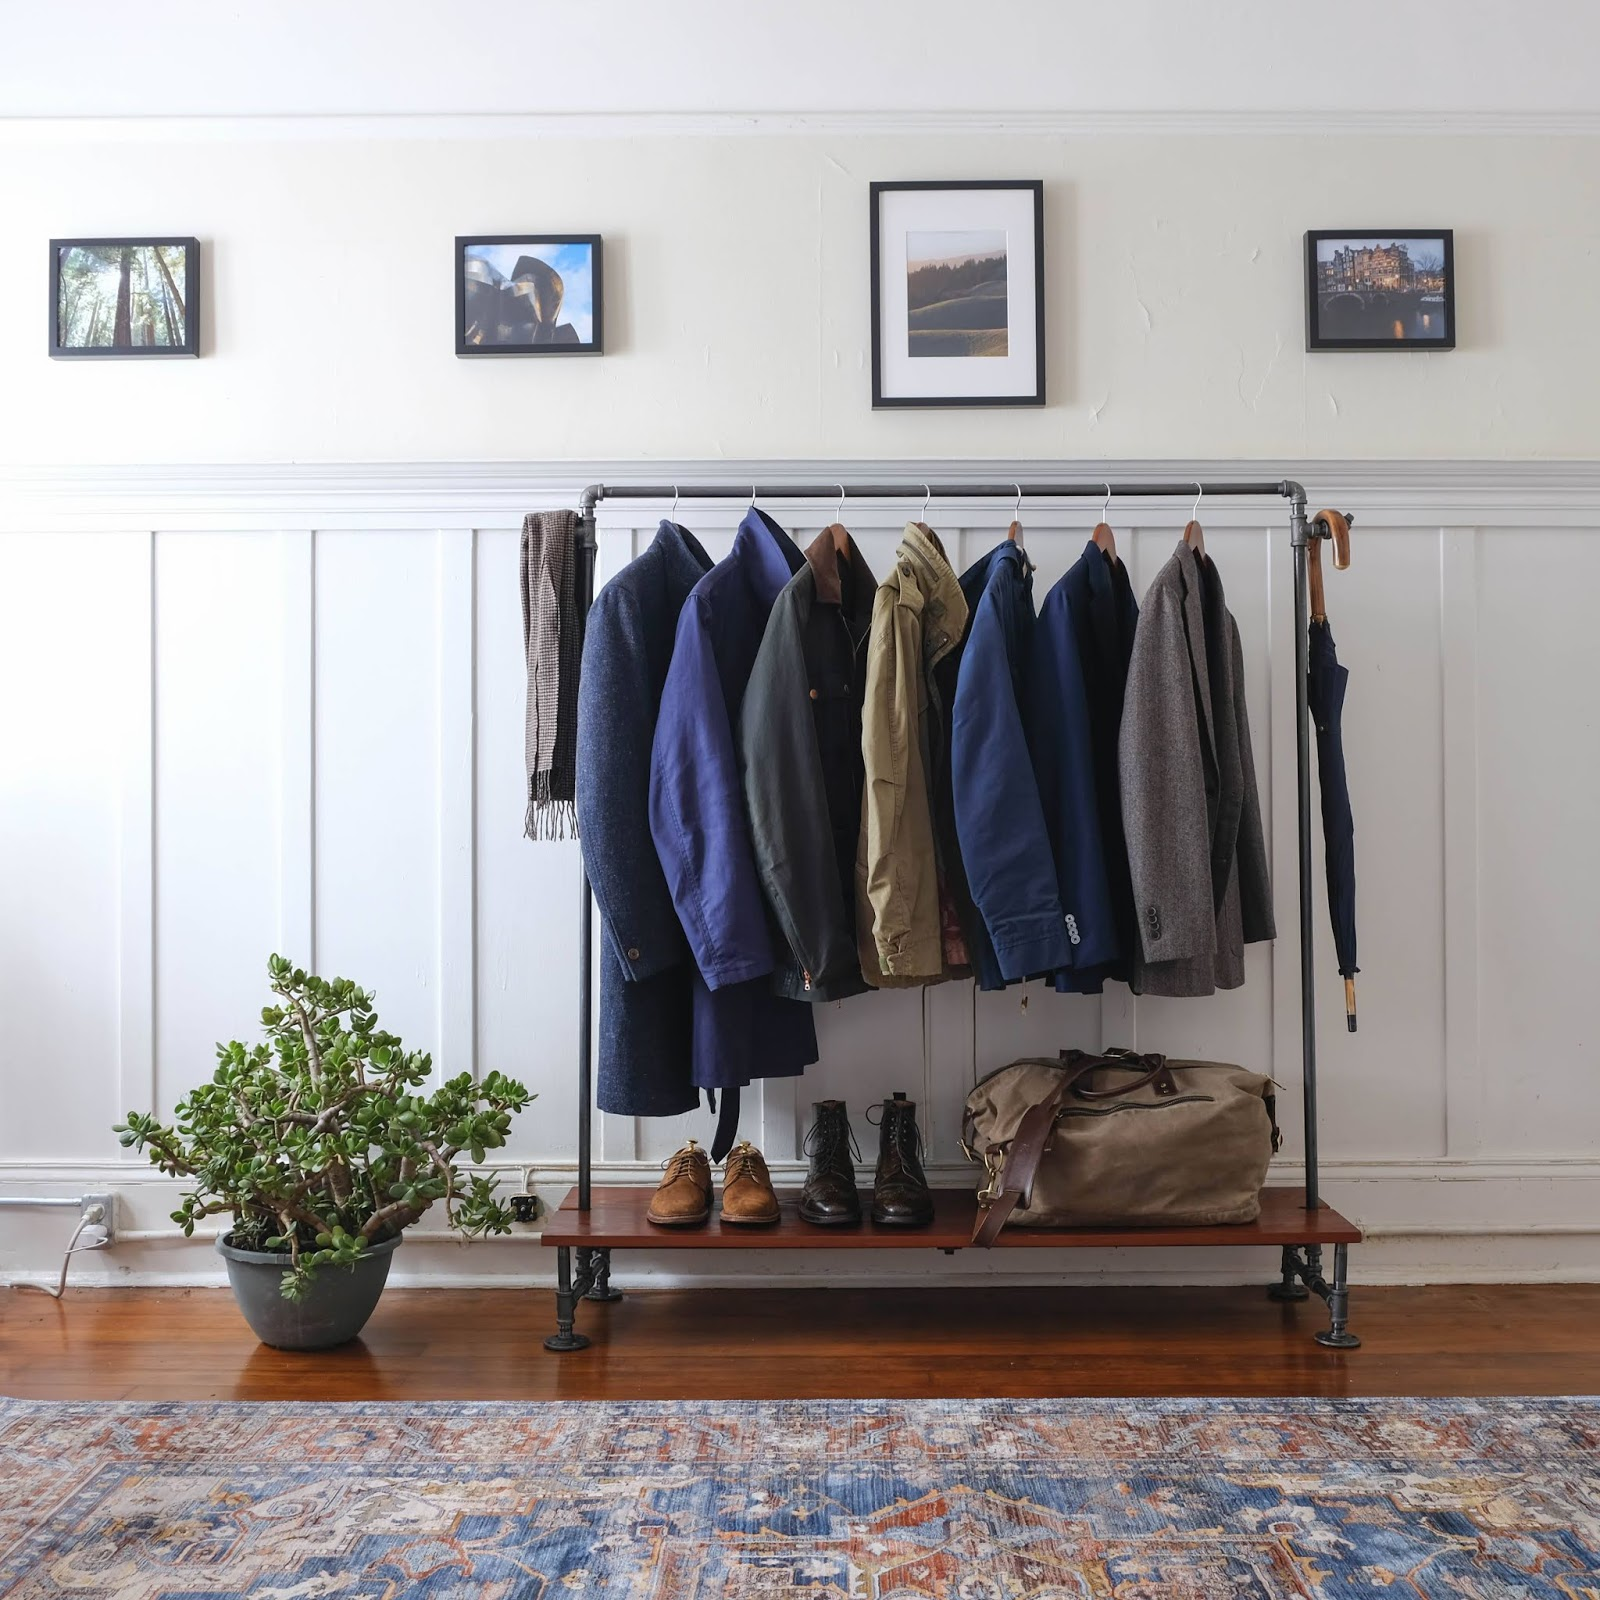 How To Make A Coat Rack Out Of Plumbing Pipe And Piece Of Wood